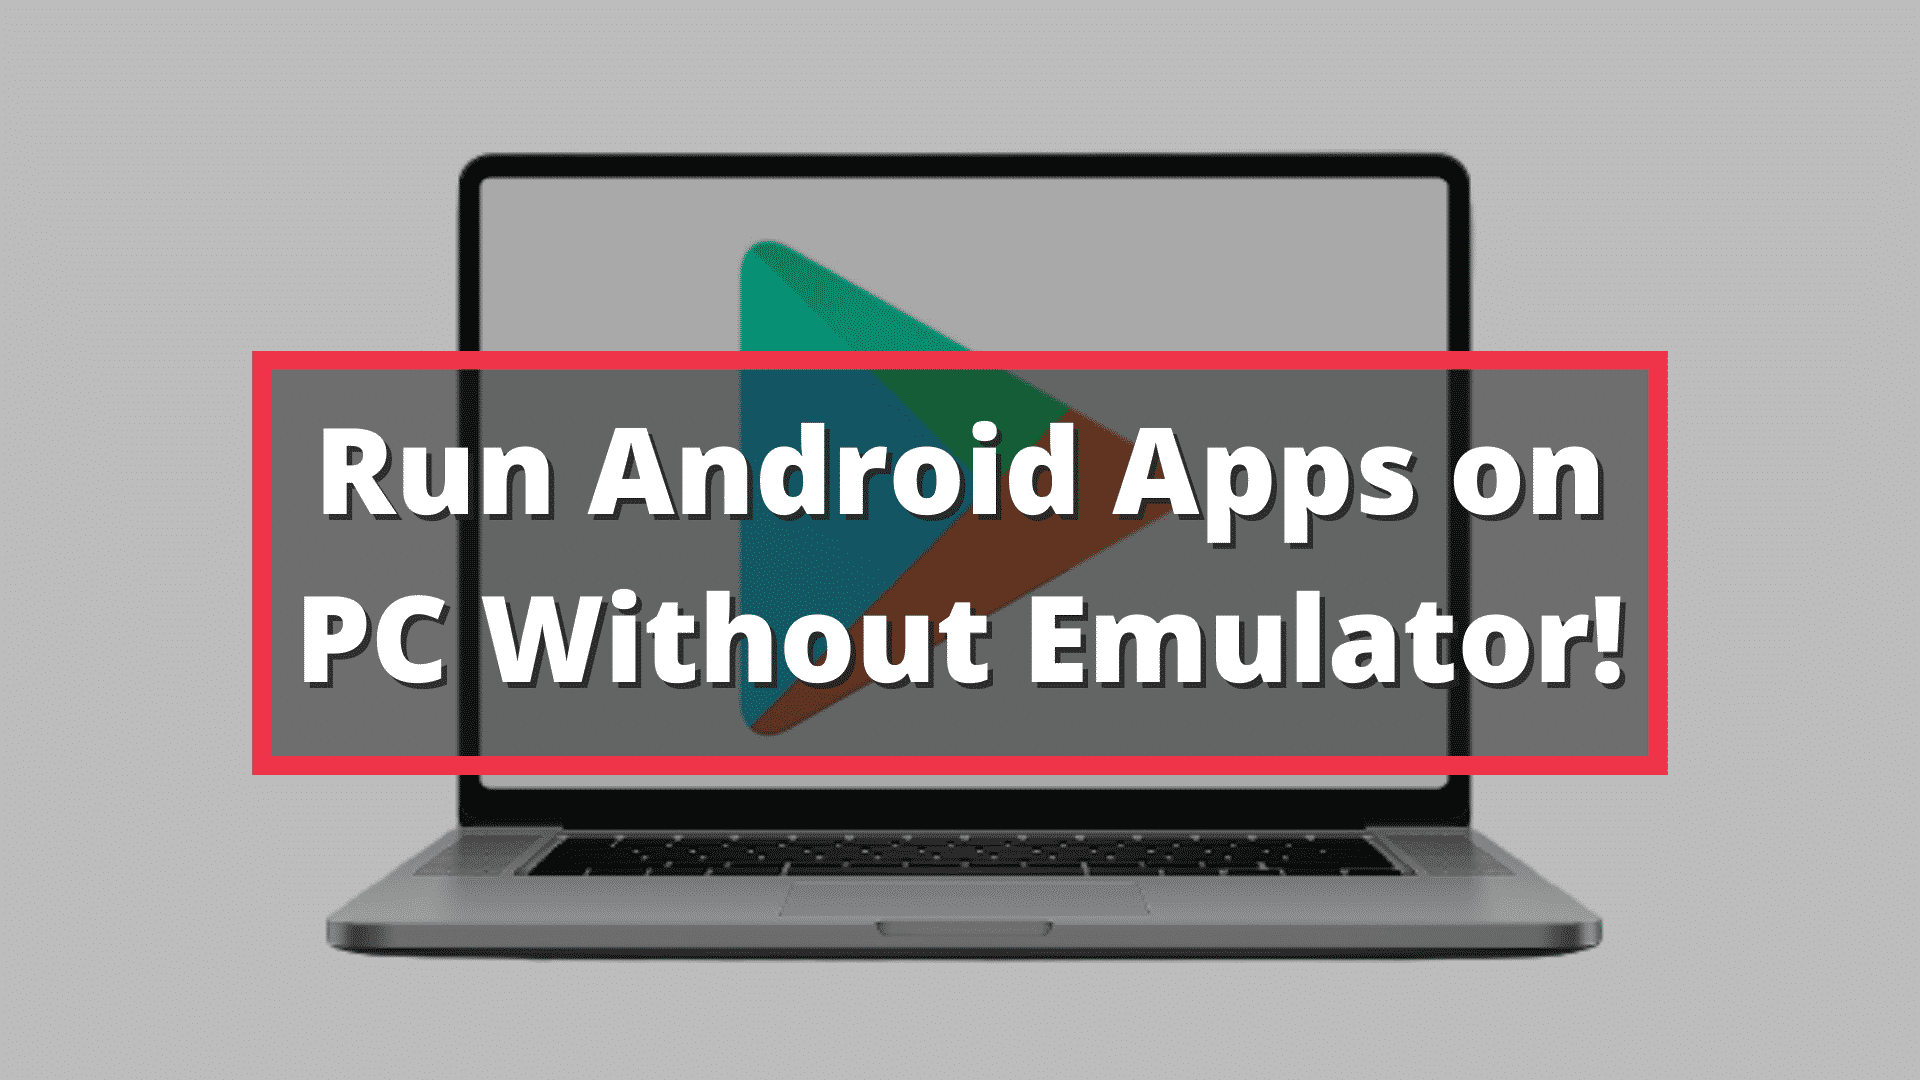 Run Android Apps on PC Without Emulator!